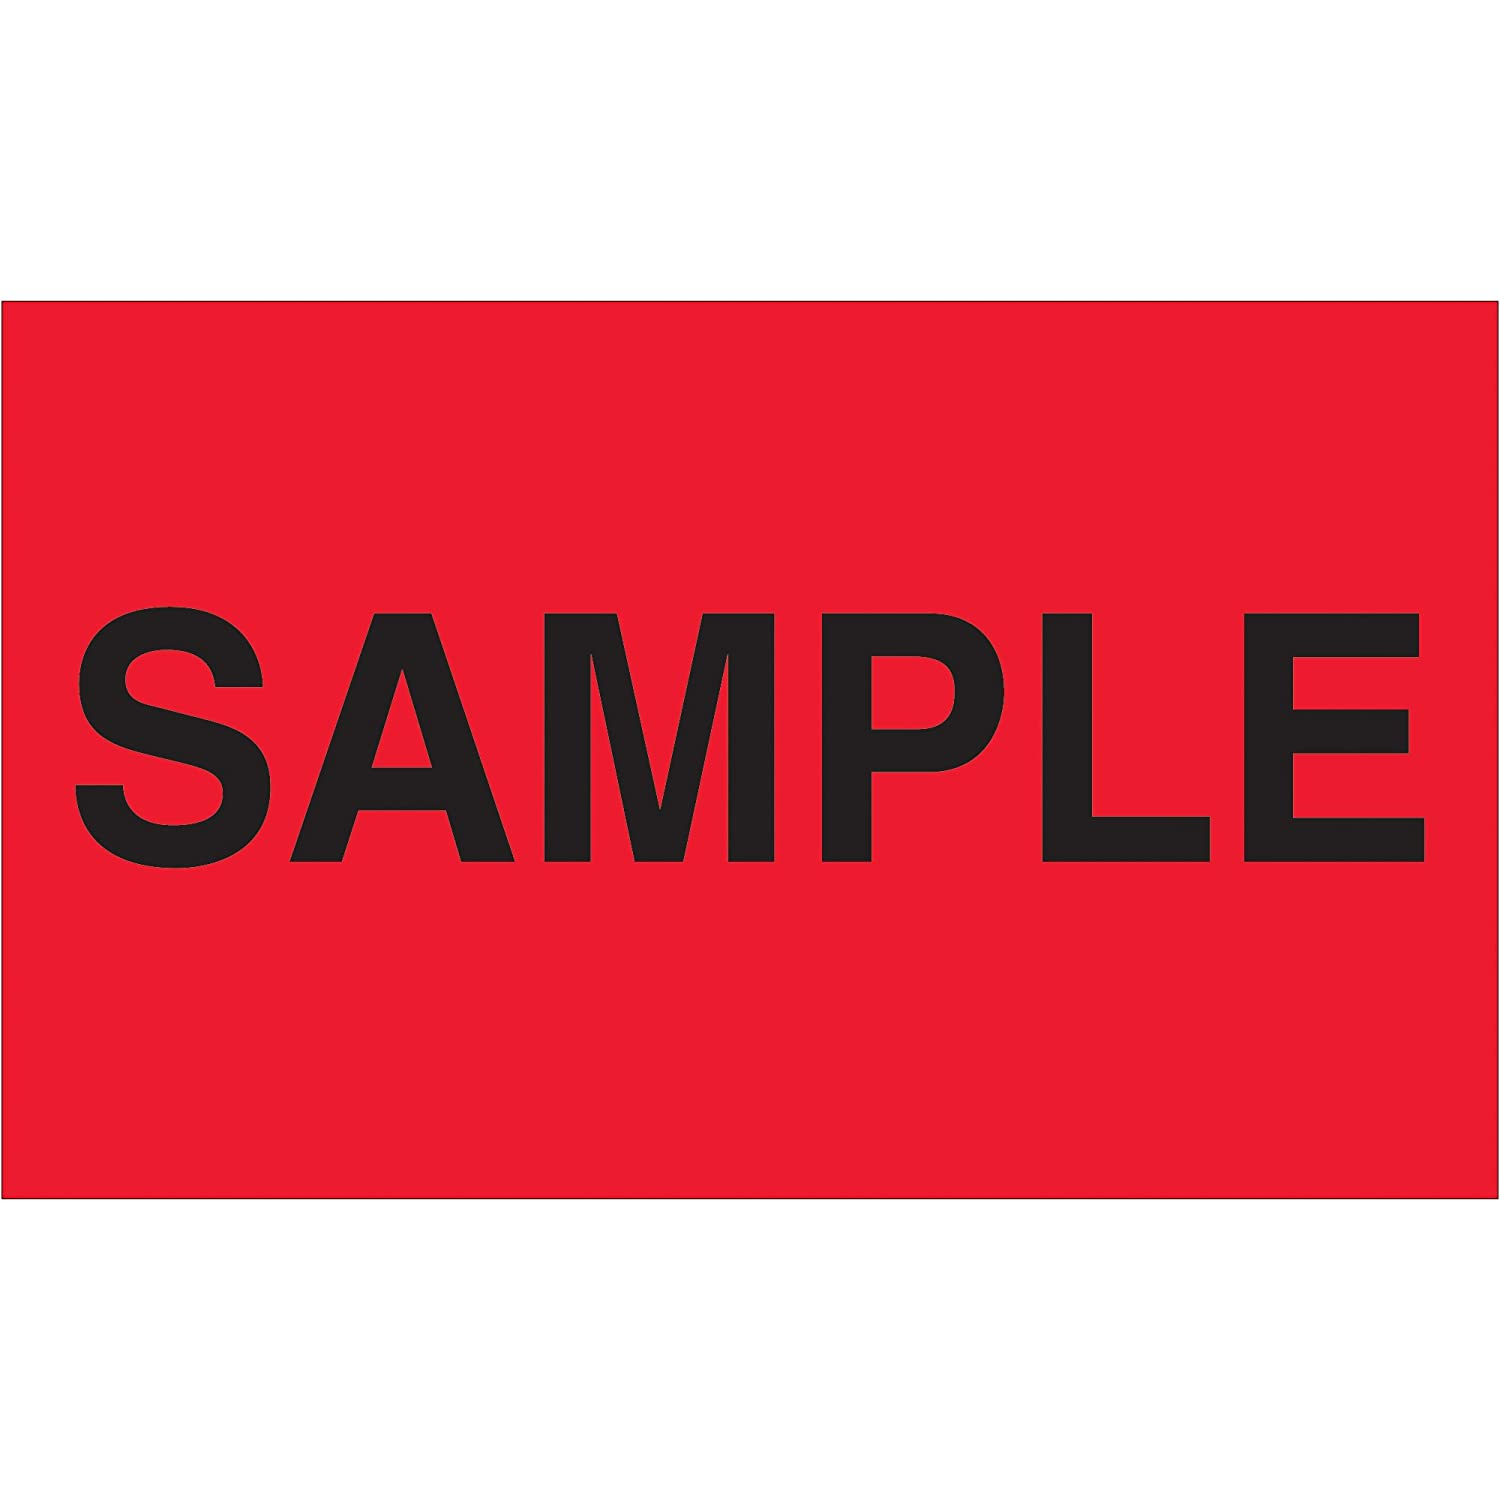 Ready to Ship Labels//Stickers 1 Roll 3 x 5 500 Labels Per Roll Fluorescent Red